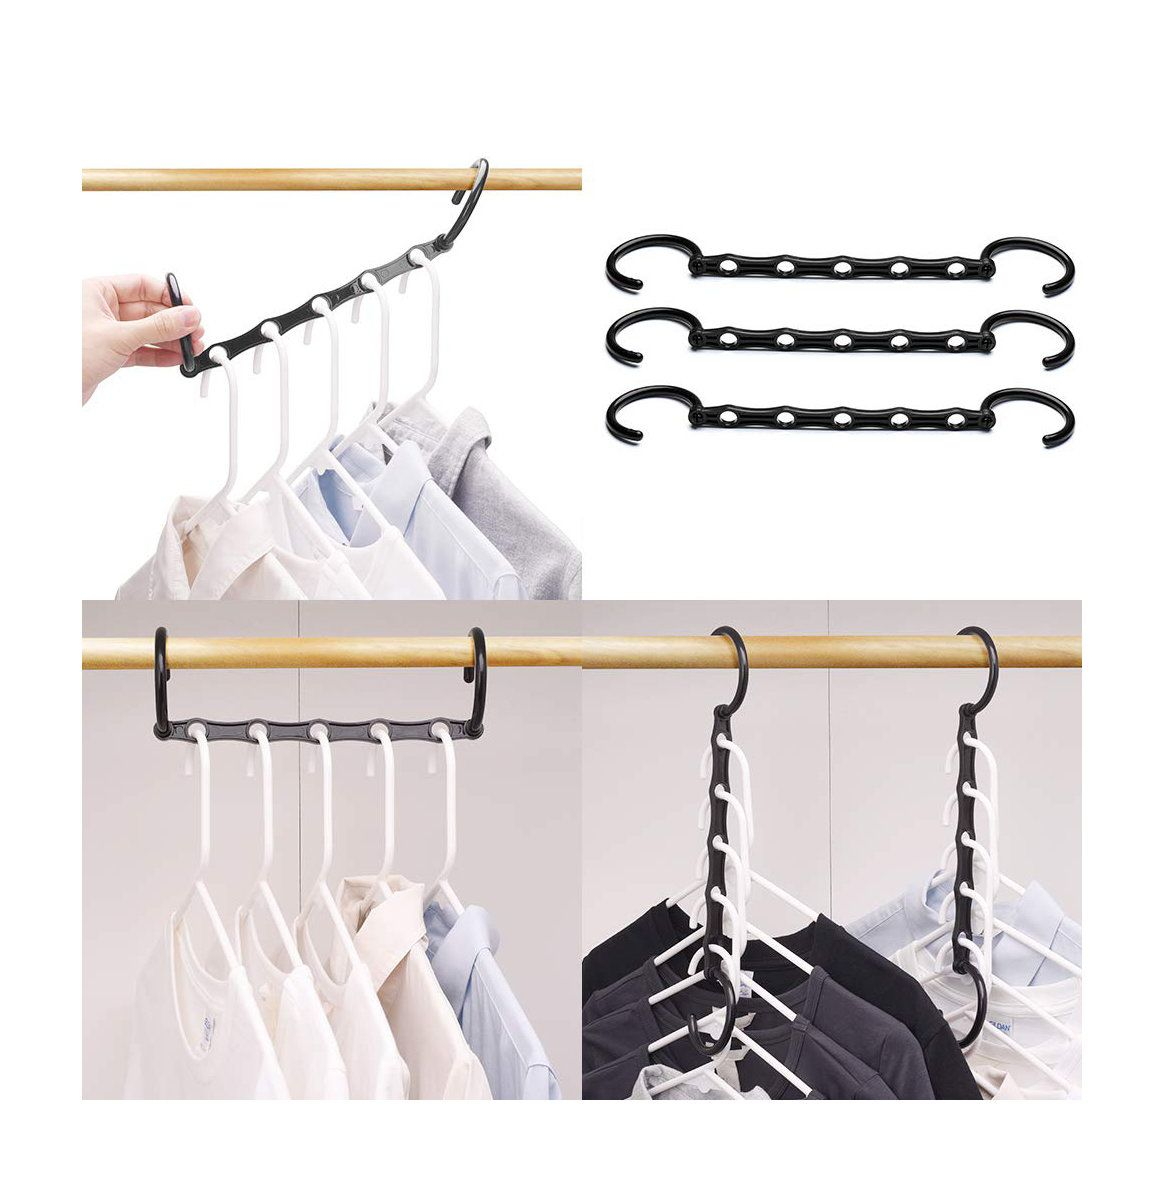 25 Best Organizers For Closets Desks And More On Amazon Space Saving Hangers Closet Space Savers Smart Closet